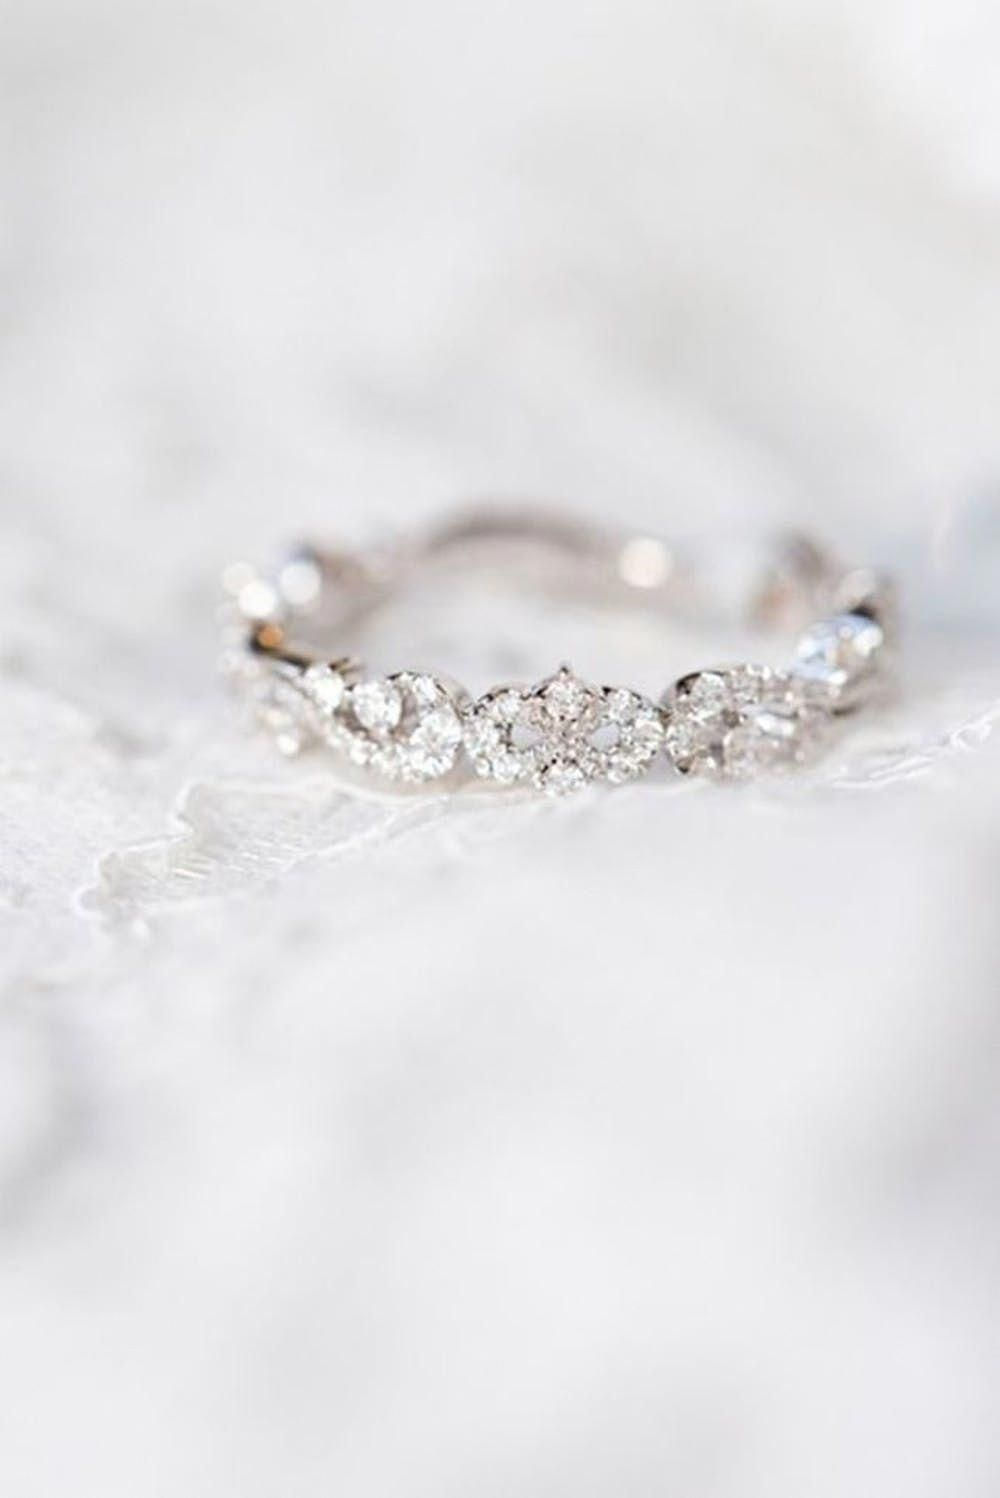 Today Throws A Wedding Gorgeous Bands That Didn't Make The Cut For Todaywedding Vote Kirk Kara Ring Weddingrings: Gorgeous Simple Wedding Rings At Reisefeber.org